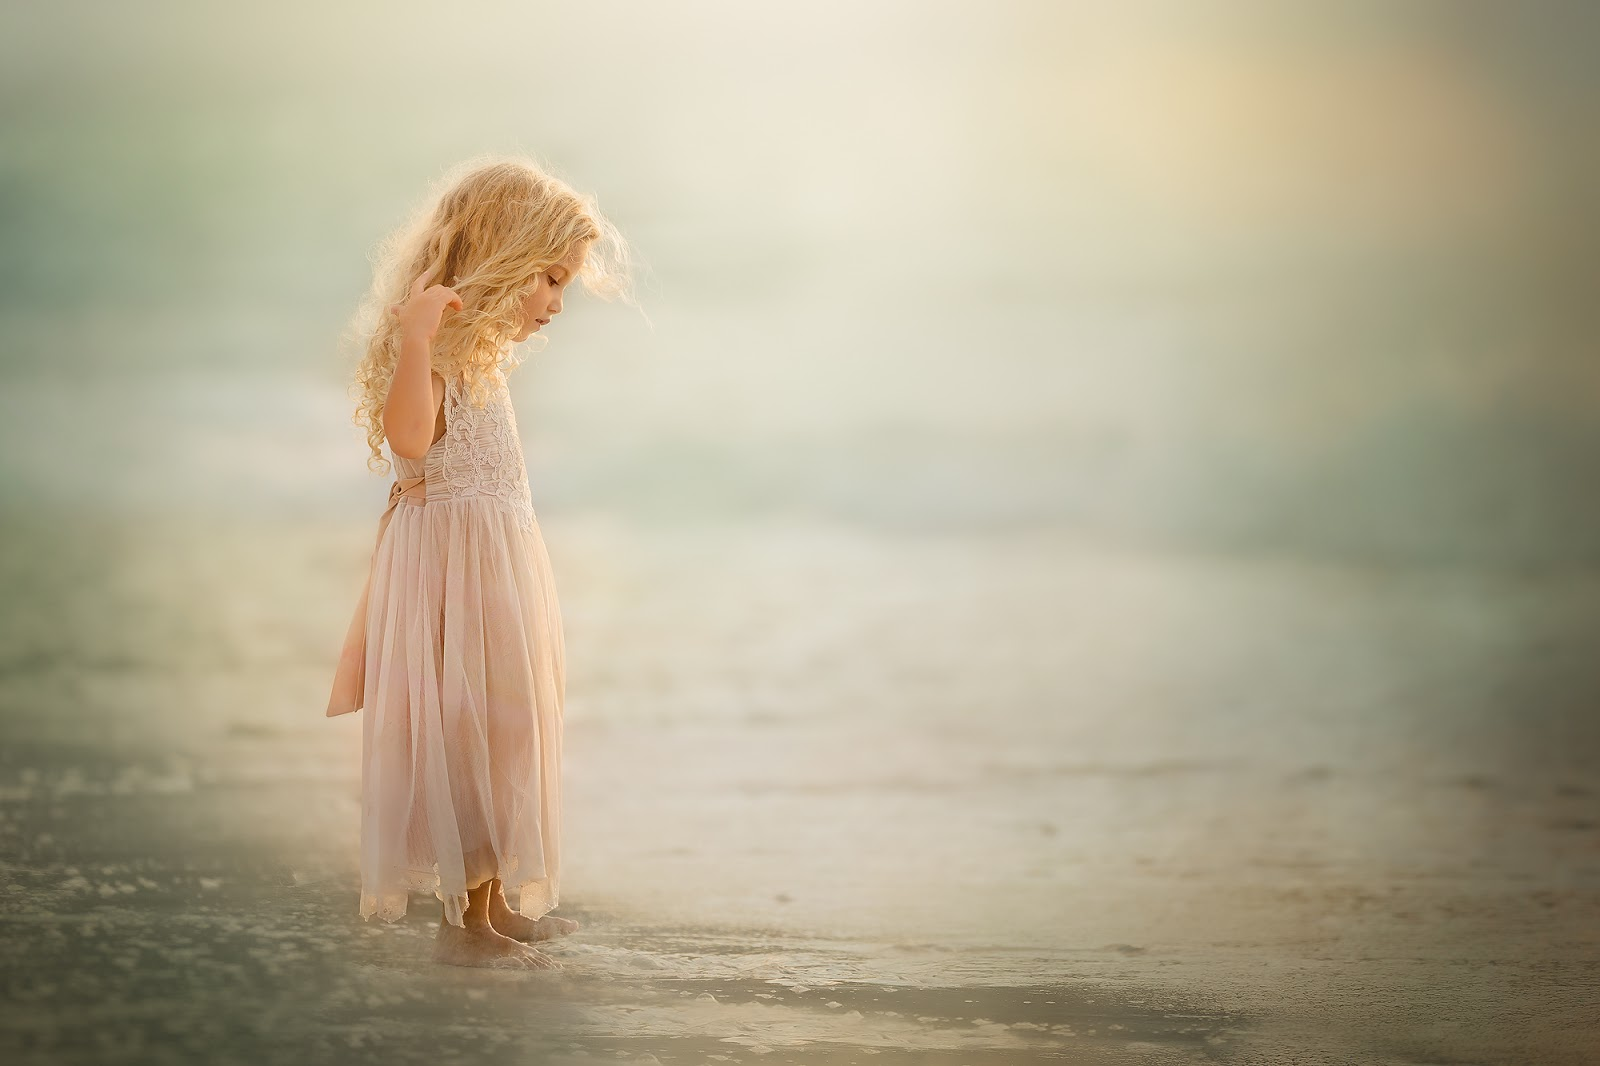 Canon 5D mark III fine art child portrait of a little girl in a pink dress standing with her feet in the caribbean ocean near curacao by Willie Kers